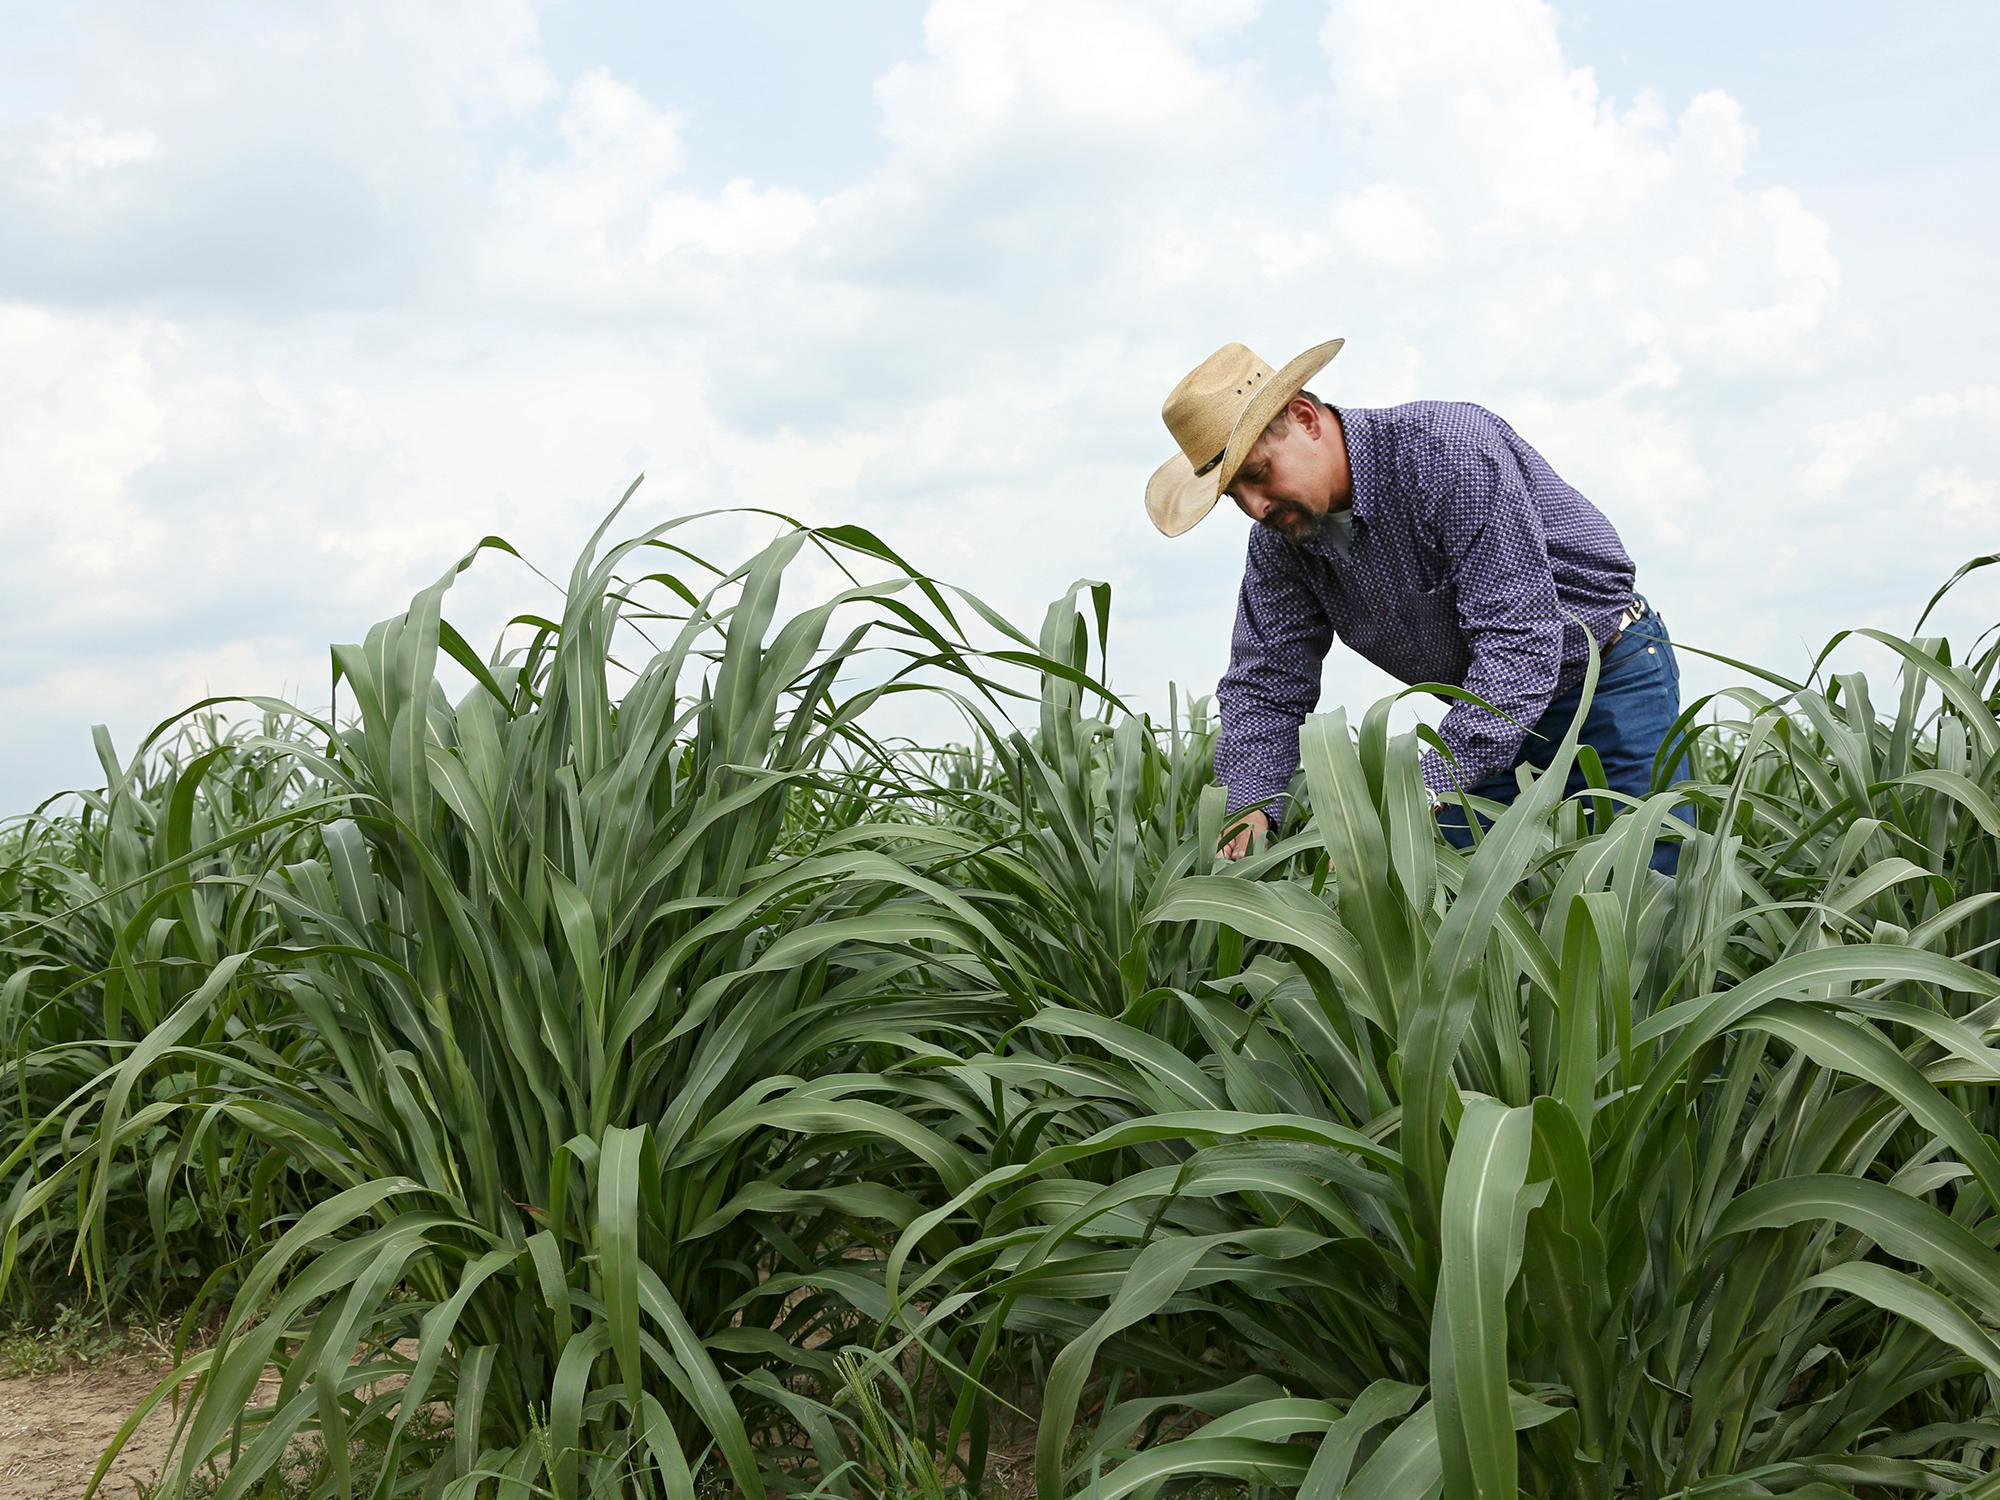 Award-winning forage specialist Rocky Lemus, associate Extension and research professor at Mississippi State University, examines grass growing in 2015 research plots. (MSU Extension Service file photo)